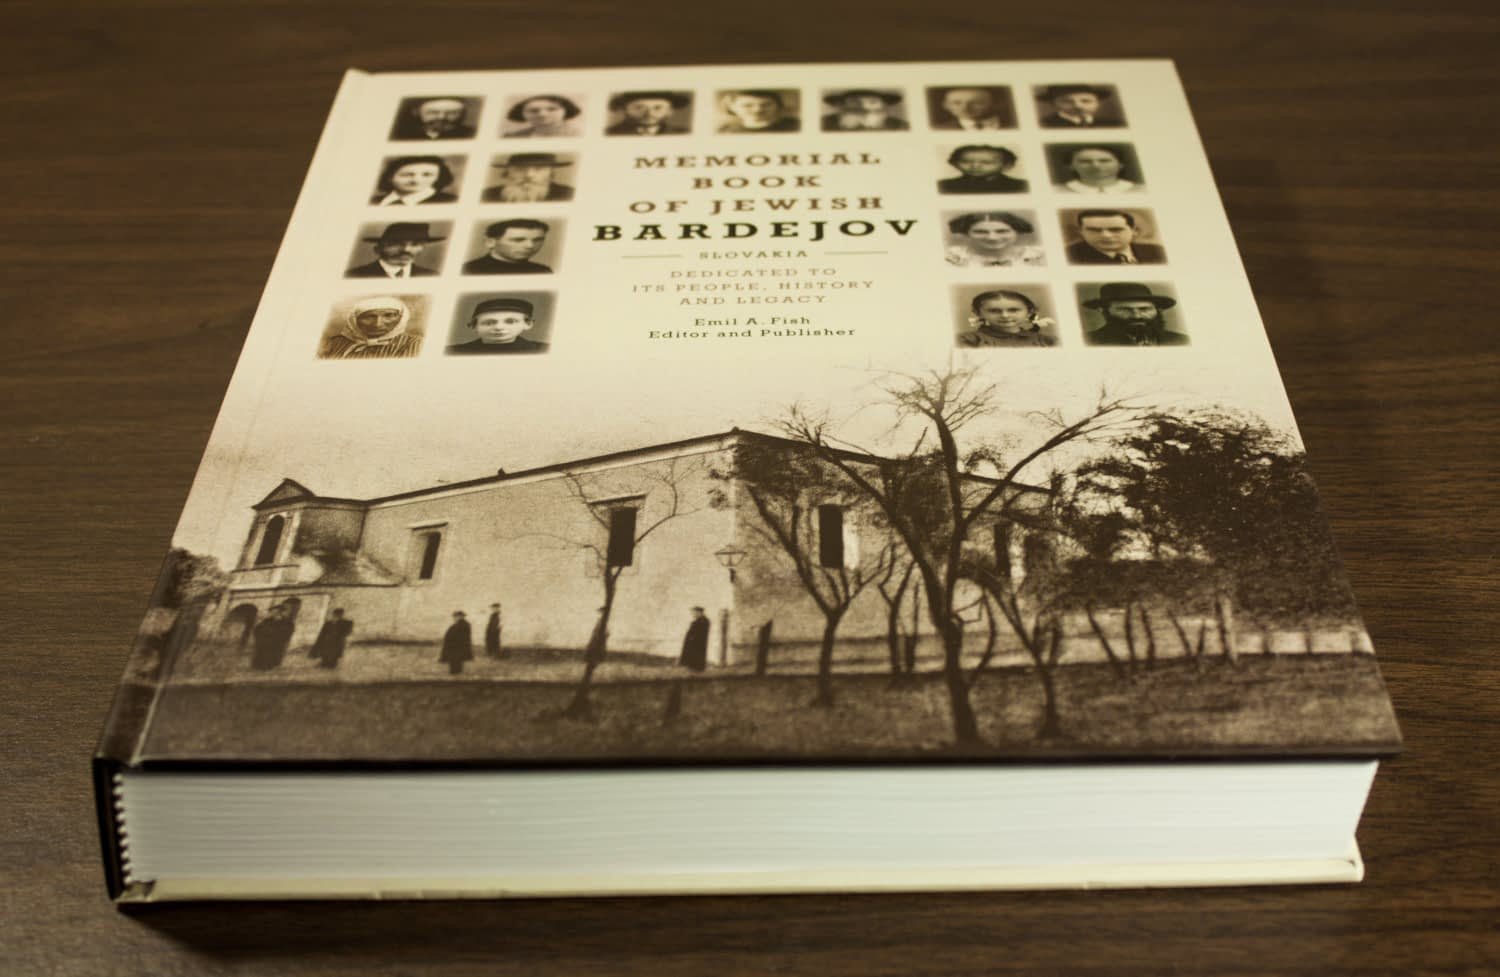 The Memorial Book of Jewish Bardejov